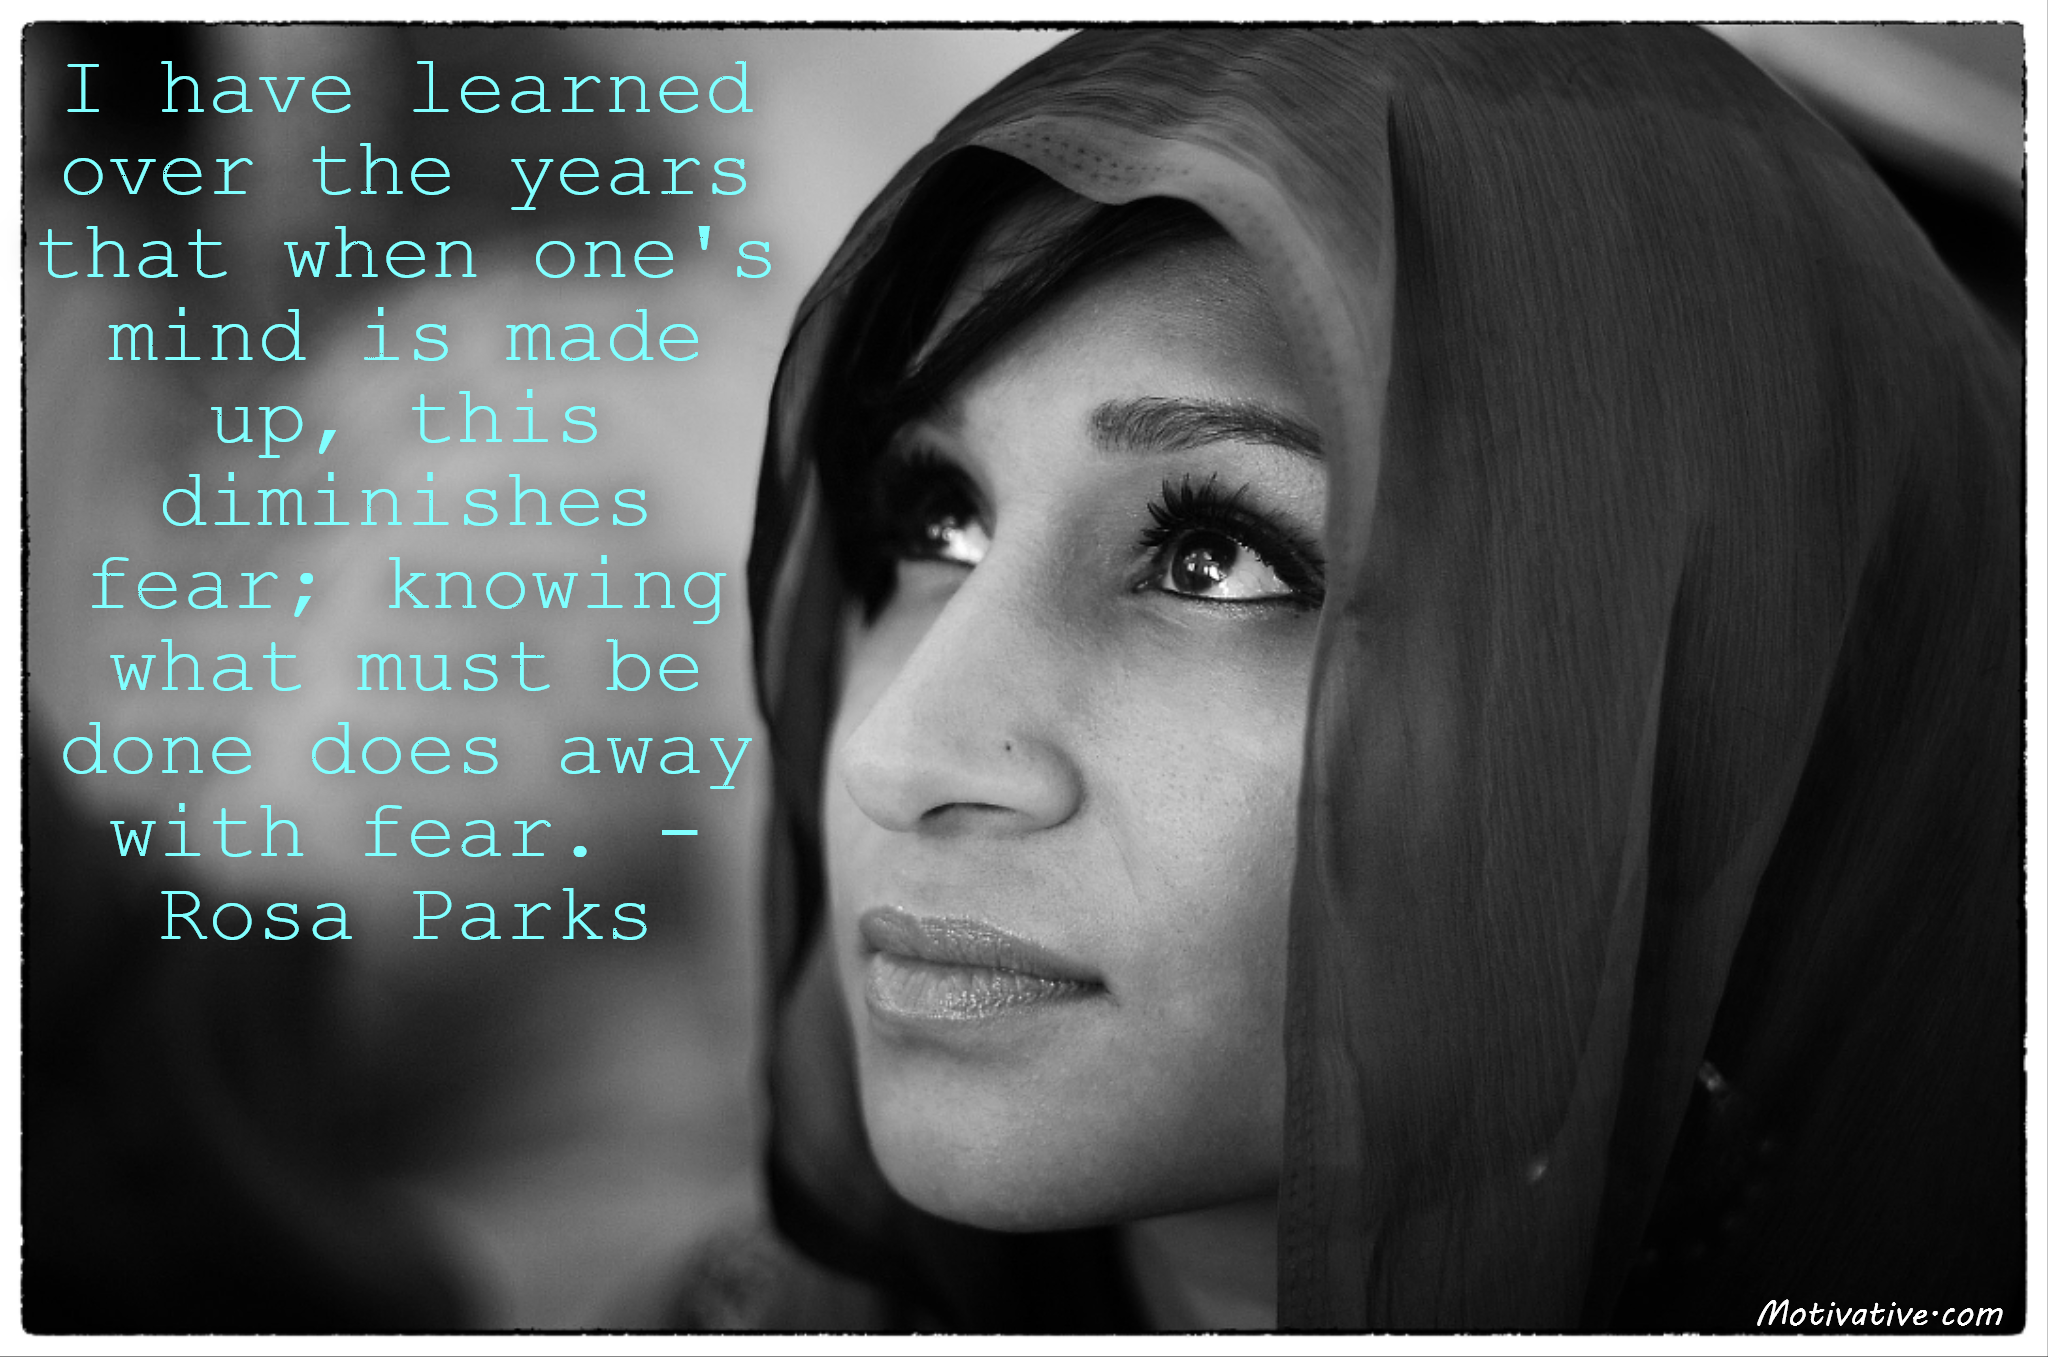 I have learned over the years that when one's mind is made up, this diminishes fear; knowing what must be done does away with fear. – Rosa Parks